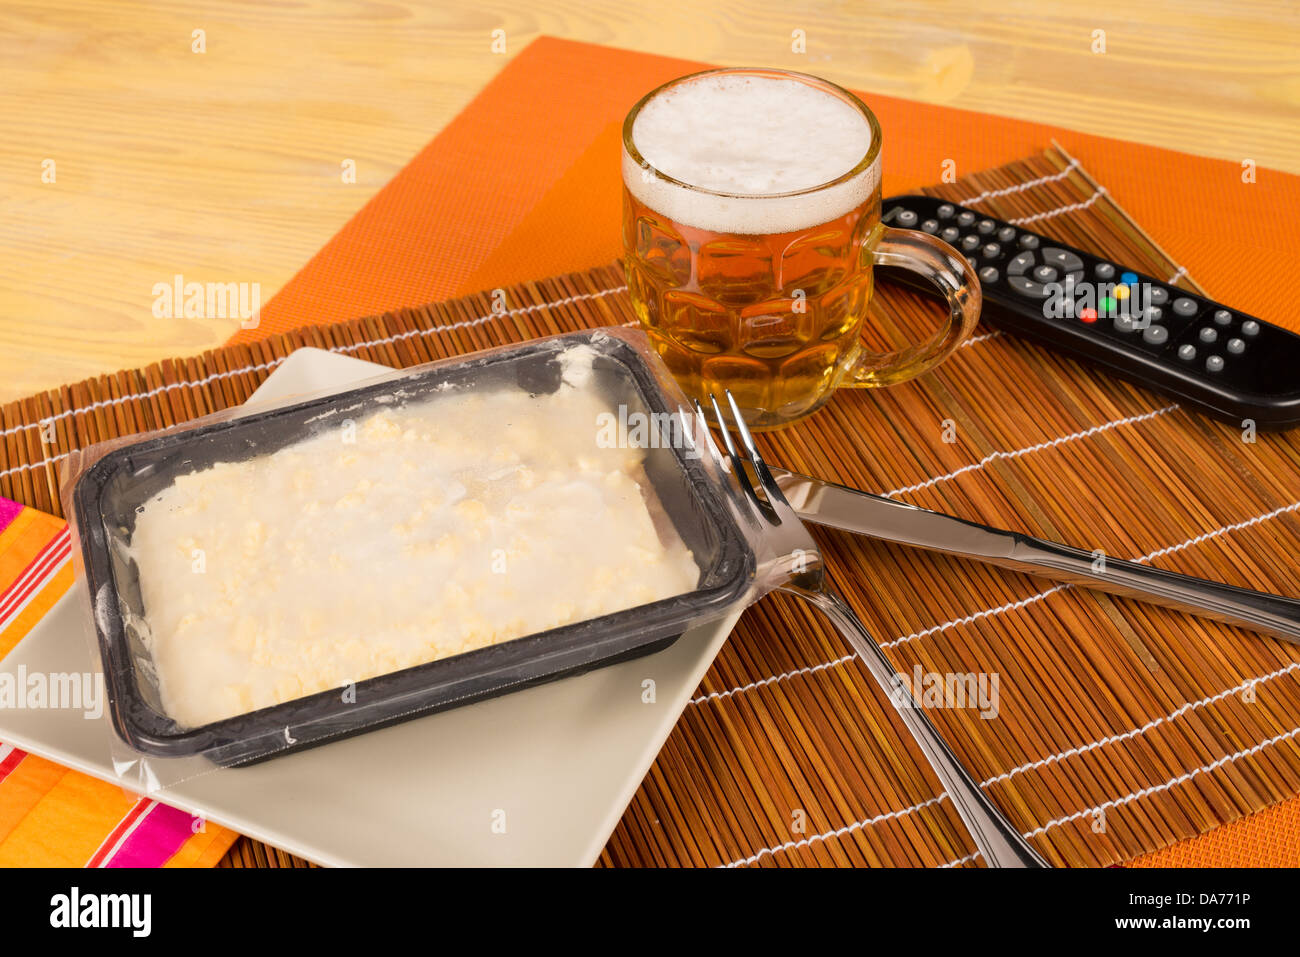 Still life with frozen food and a remote control, a concept - Stock Image